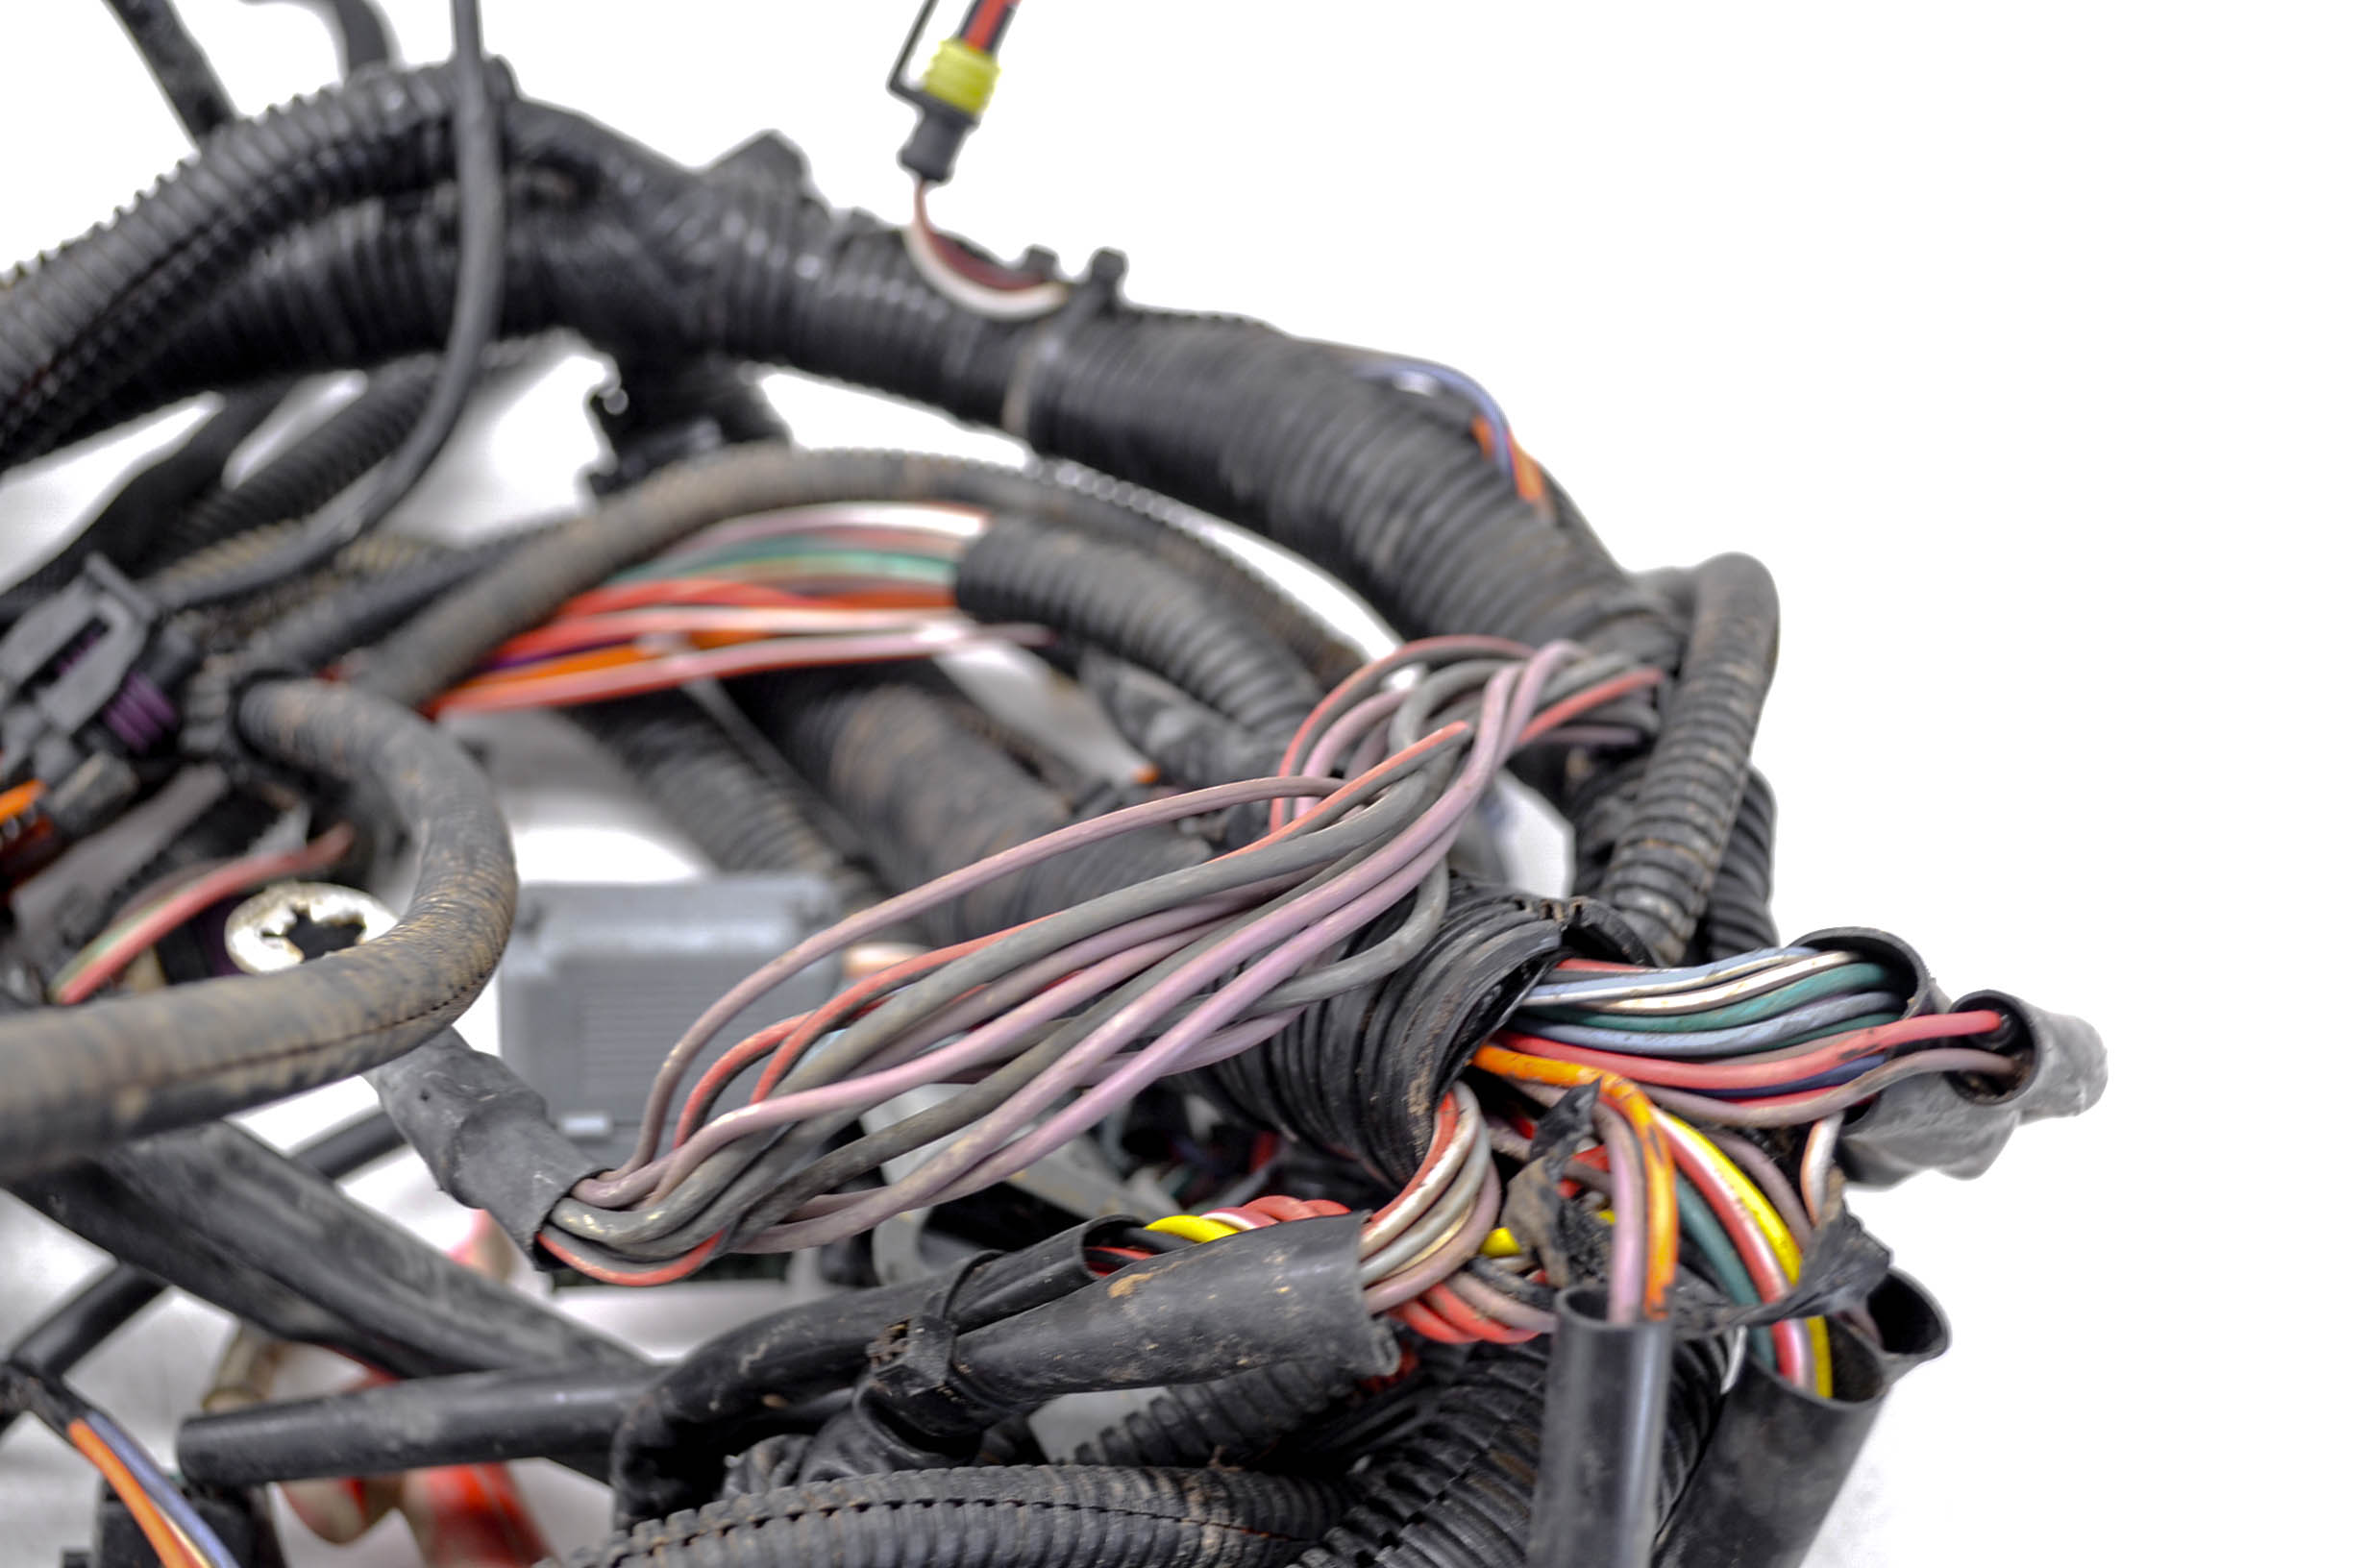 89 toyota pickup 4x4 wiring harness 09 polaris sportsman 800 x2 4x4 wire harness electrical ... 4x4 harness #12